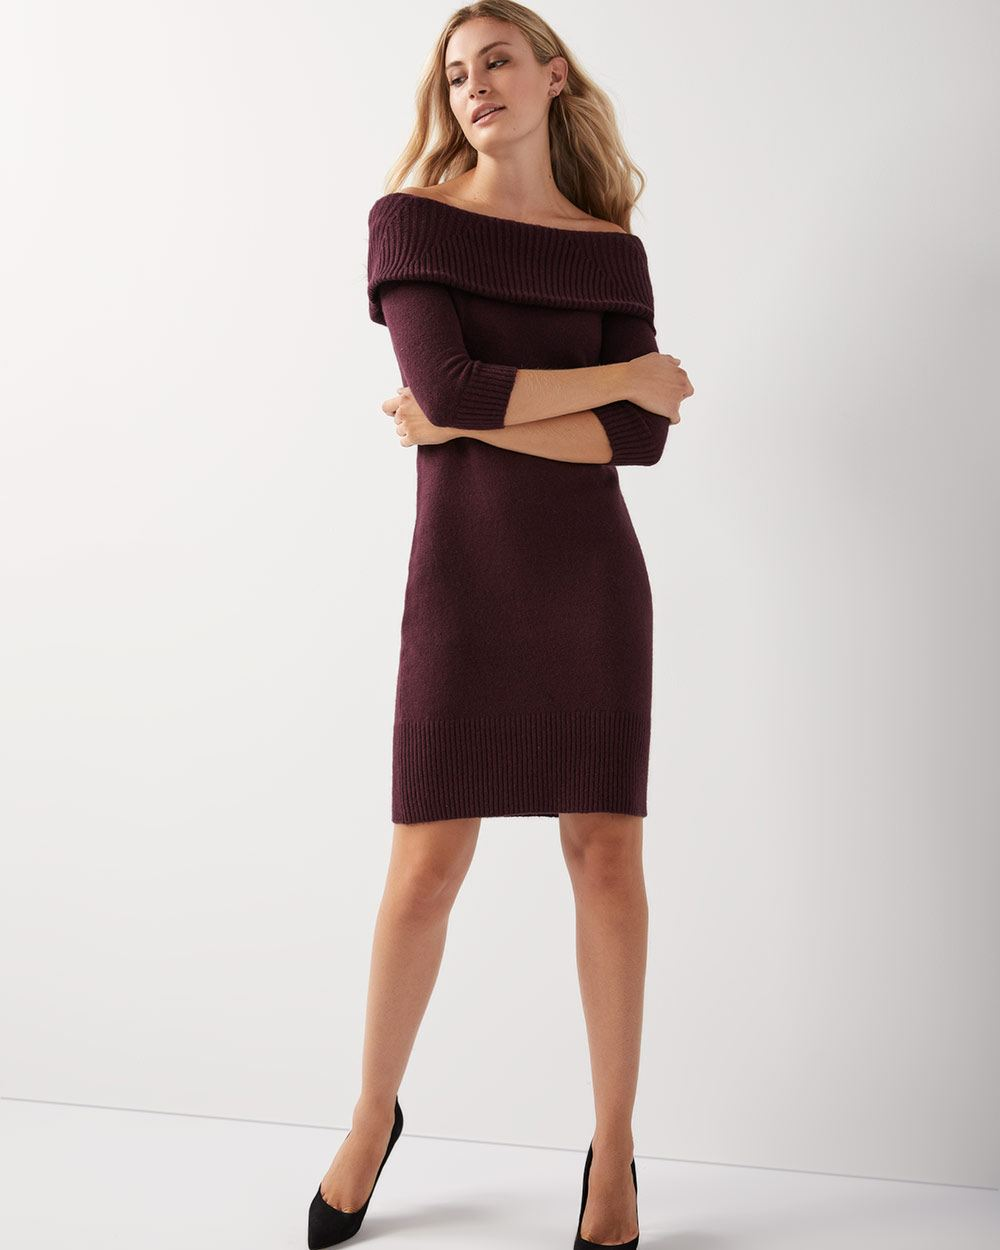 ca7525ee167 Off-the-shoulder sweater dress